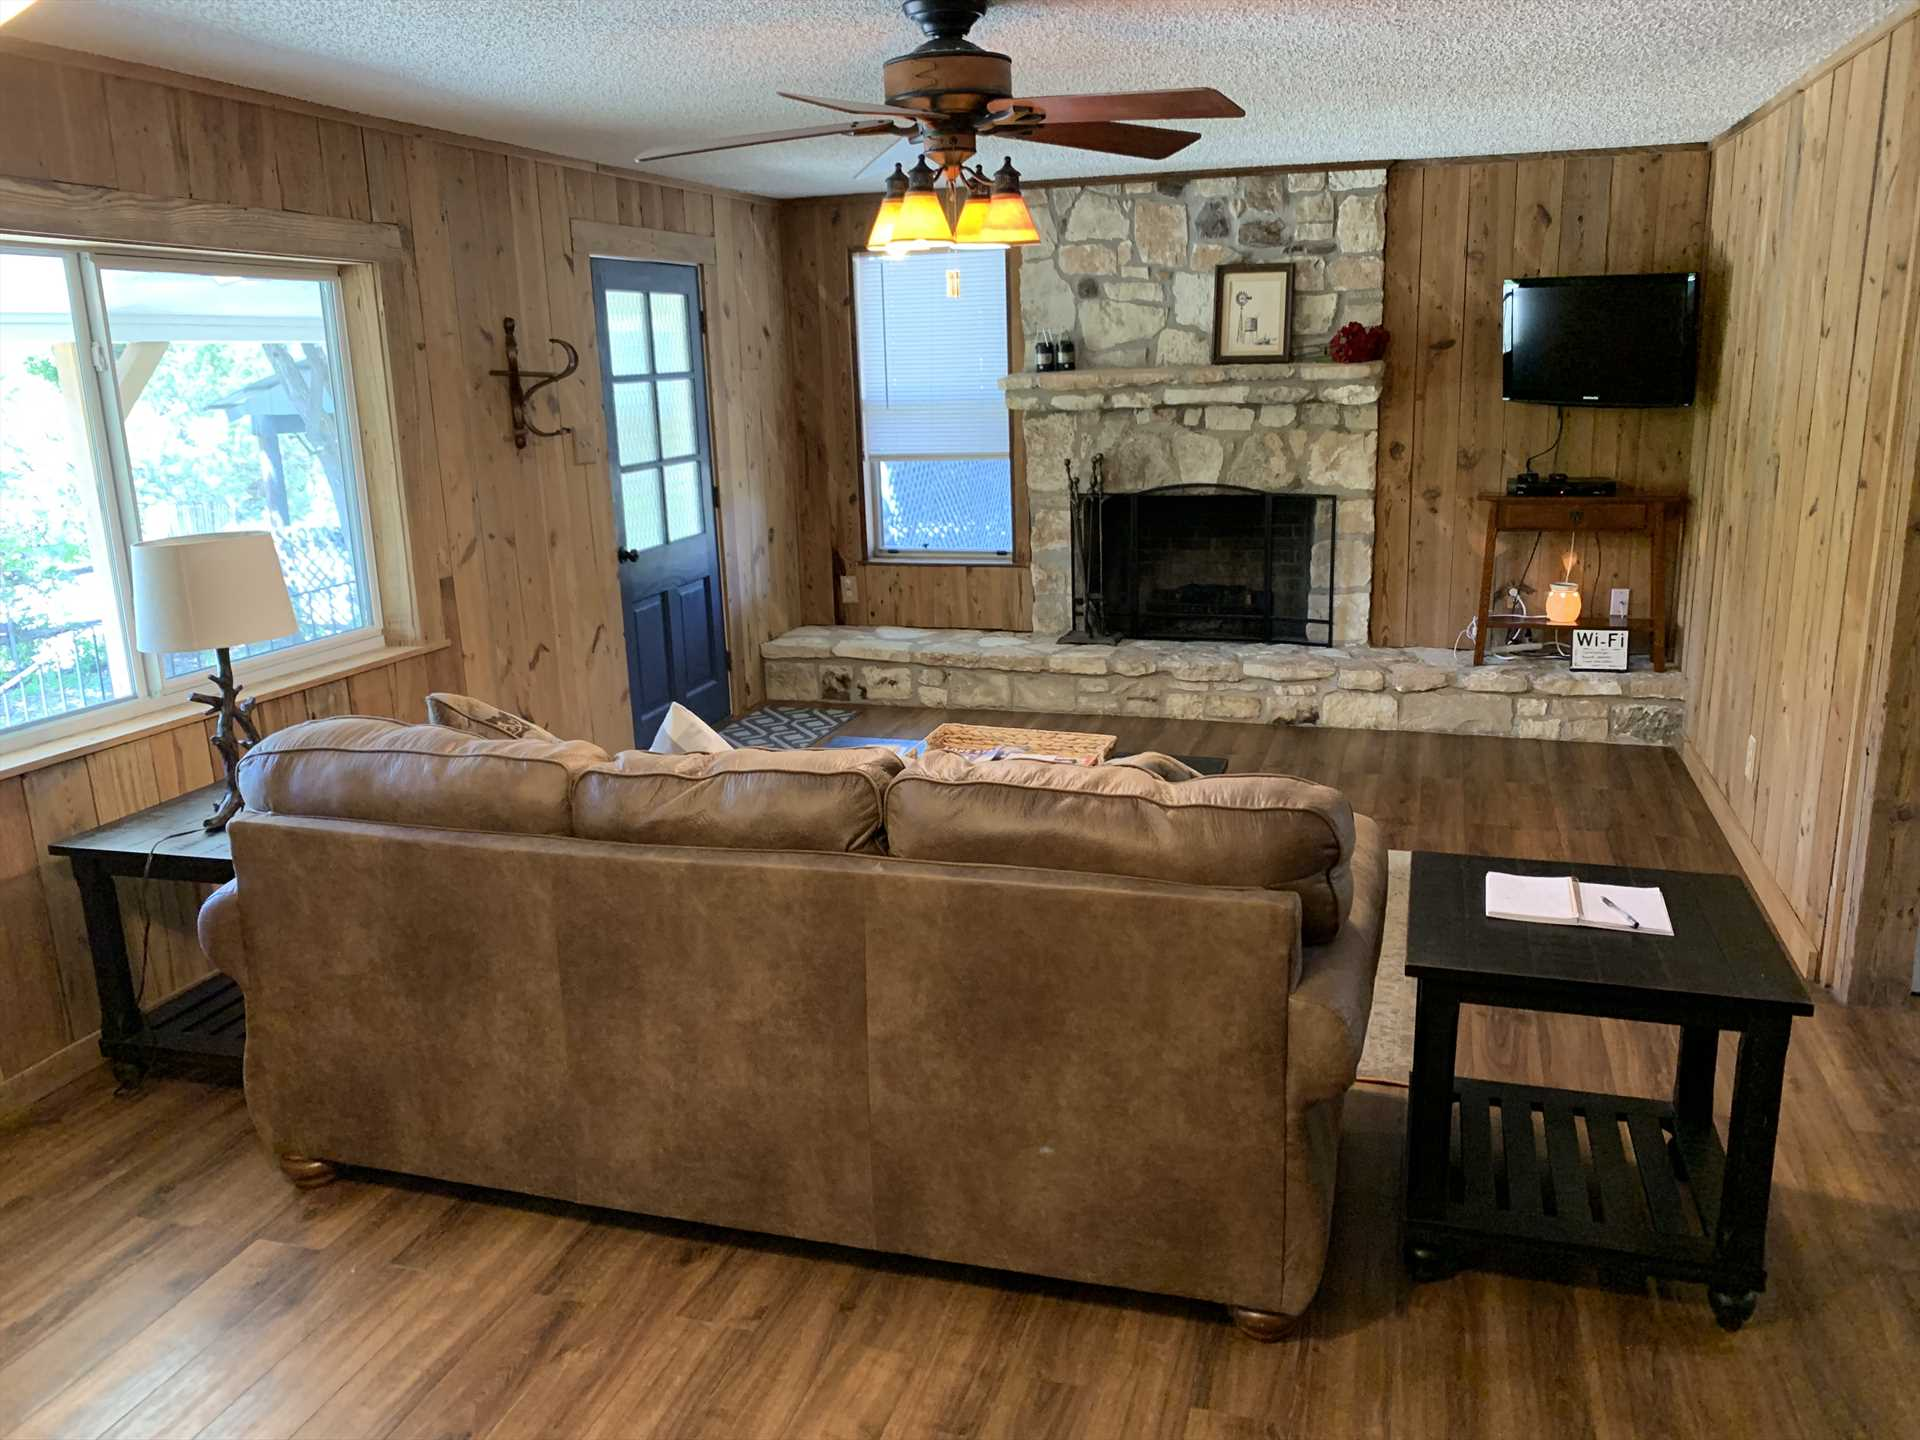 Satellite TV, high-speed Internet, and multiple AC and heating units are among the amenities included for both comfort and fun!